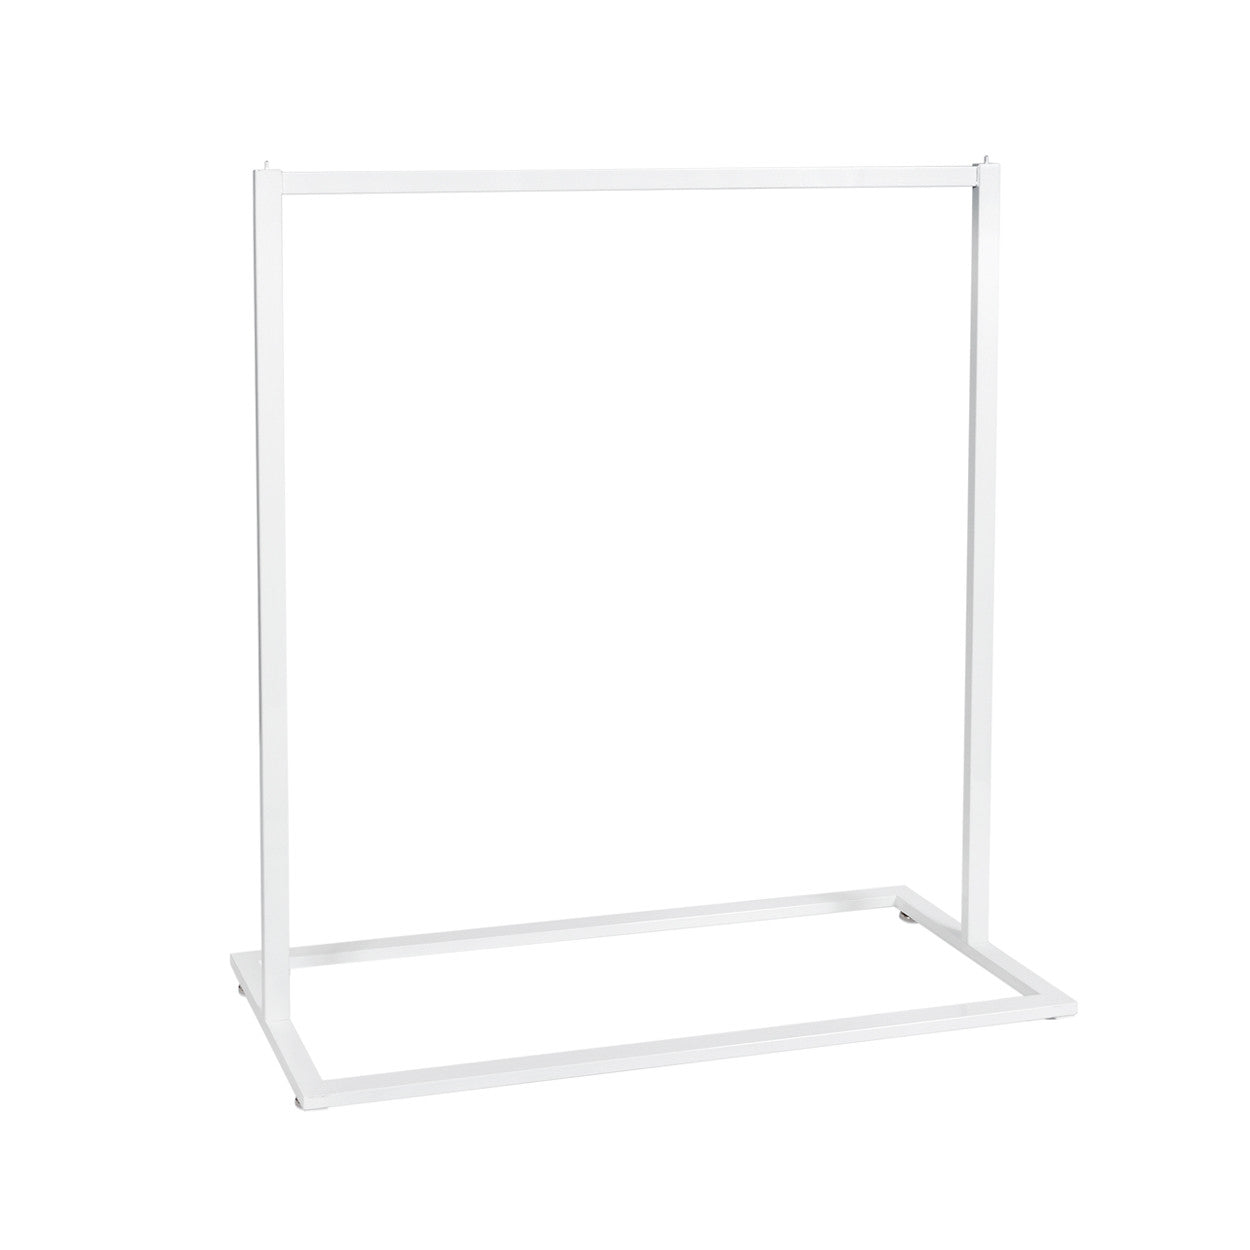 Style Clothes Rack - Single Rail in White (1200 W x 1317 H x 457 mm D)